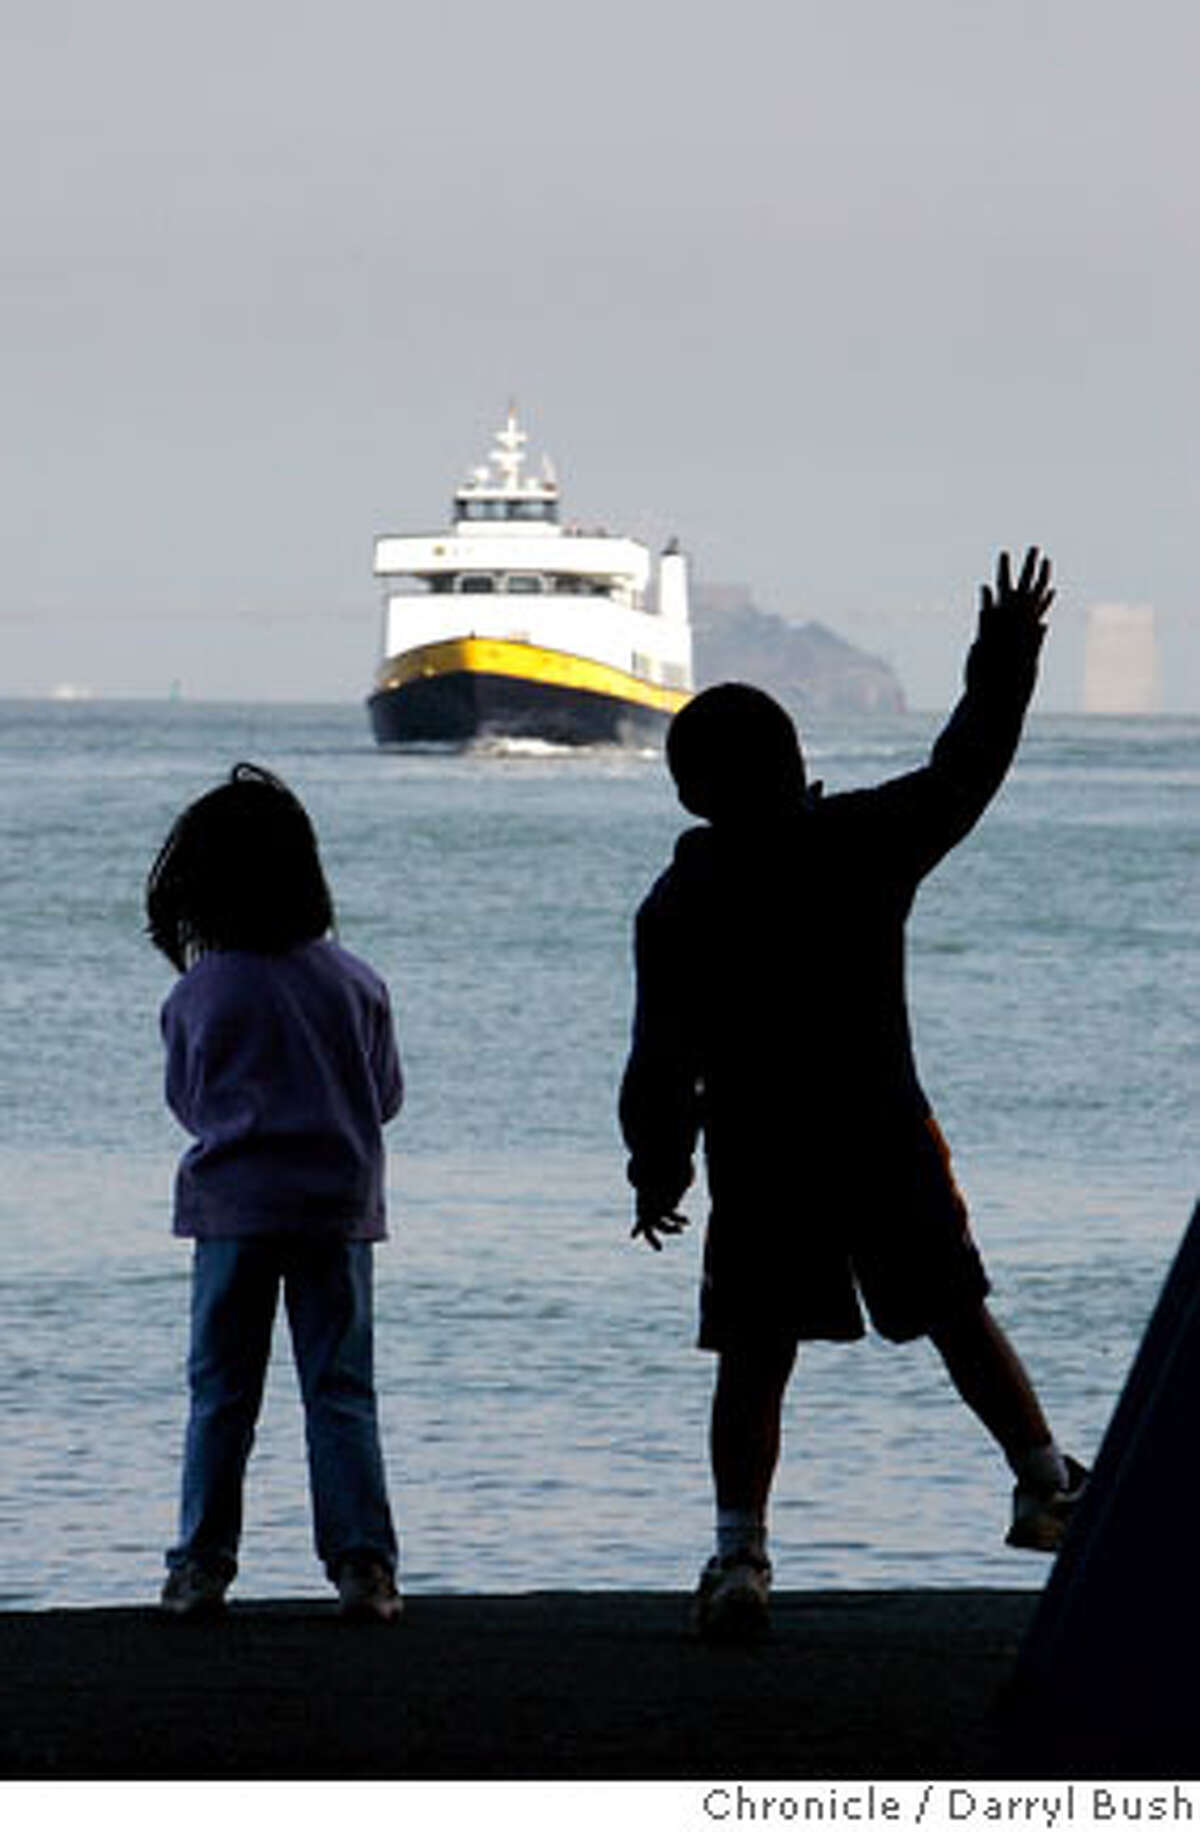 steetdate24_0278_db.jpg Kids play with a ferry approaching the dock in Sausalito, CA on Tuesday, August 15, 2006. 8/15/06 Darryl Bush / The Chronicle ** roster (cq)